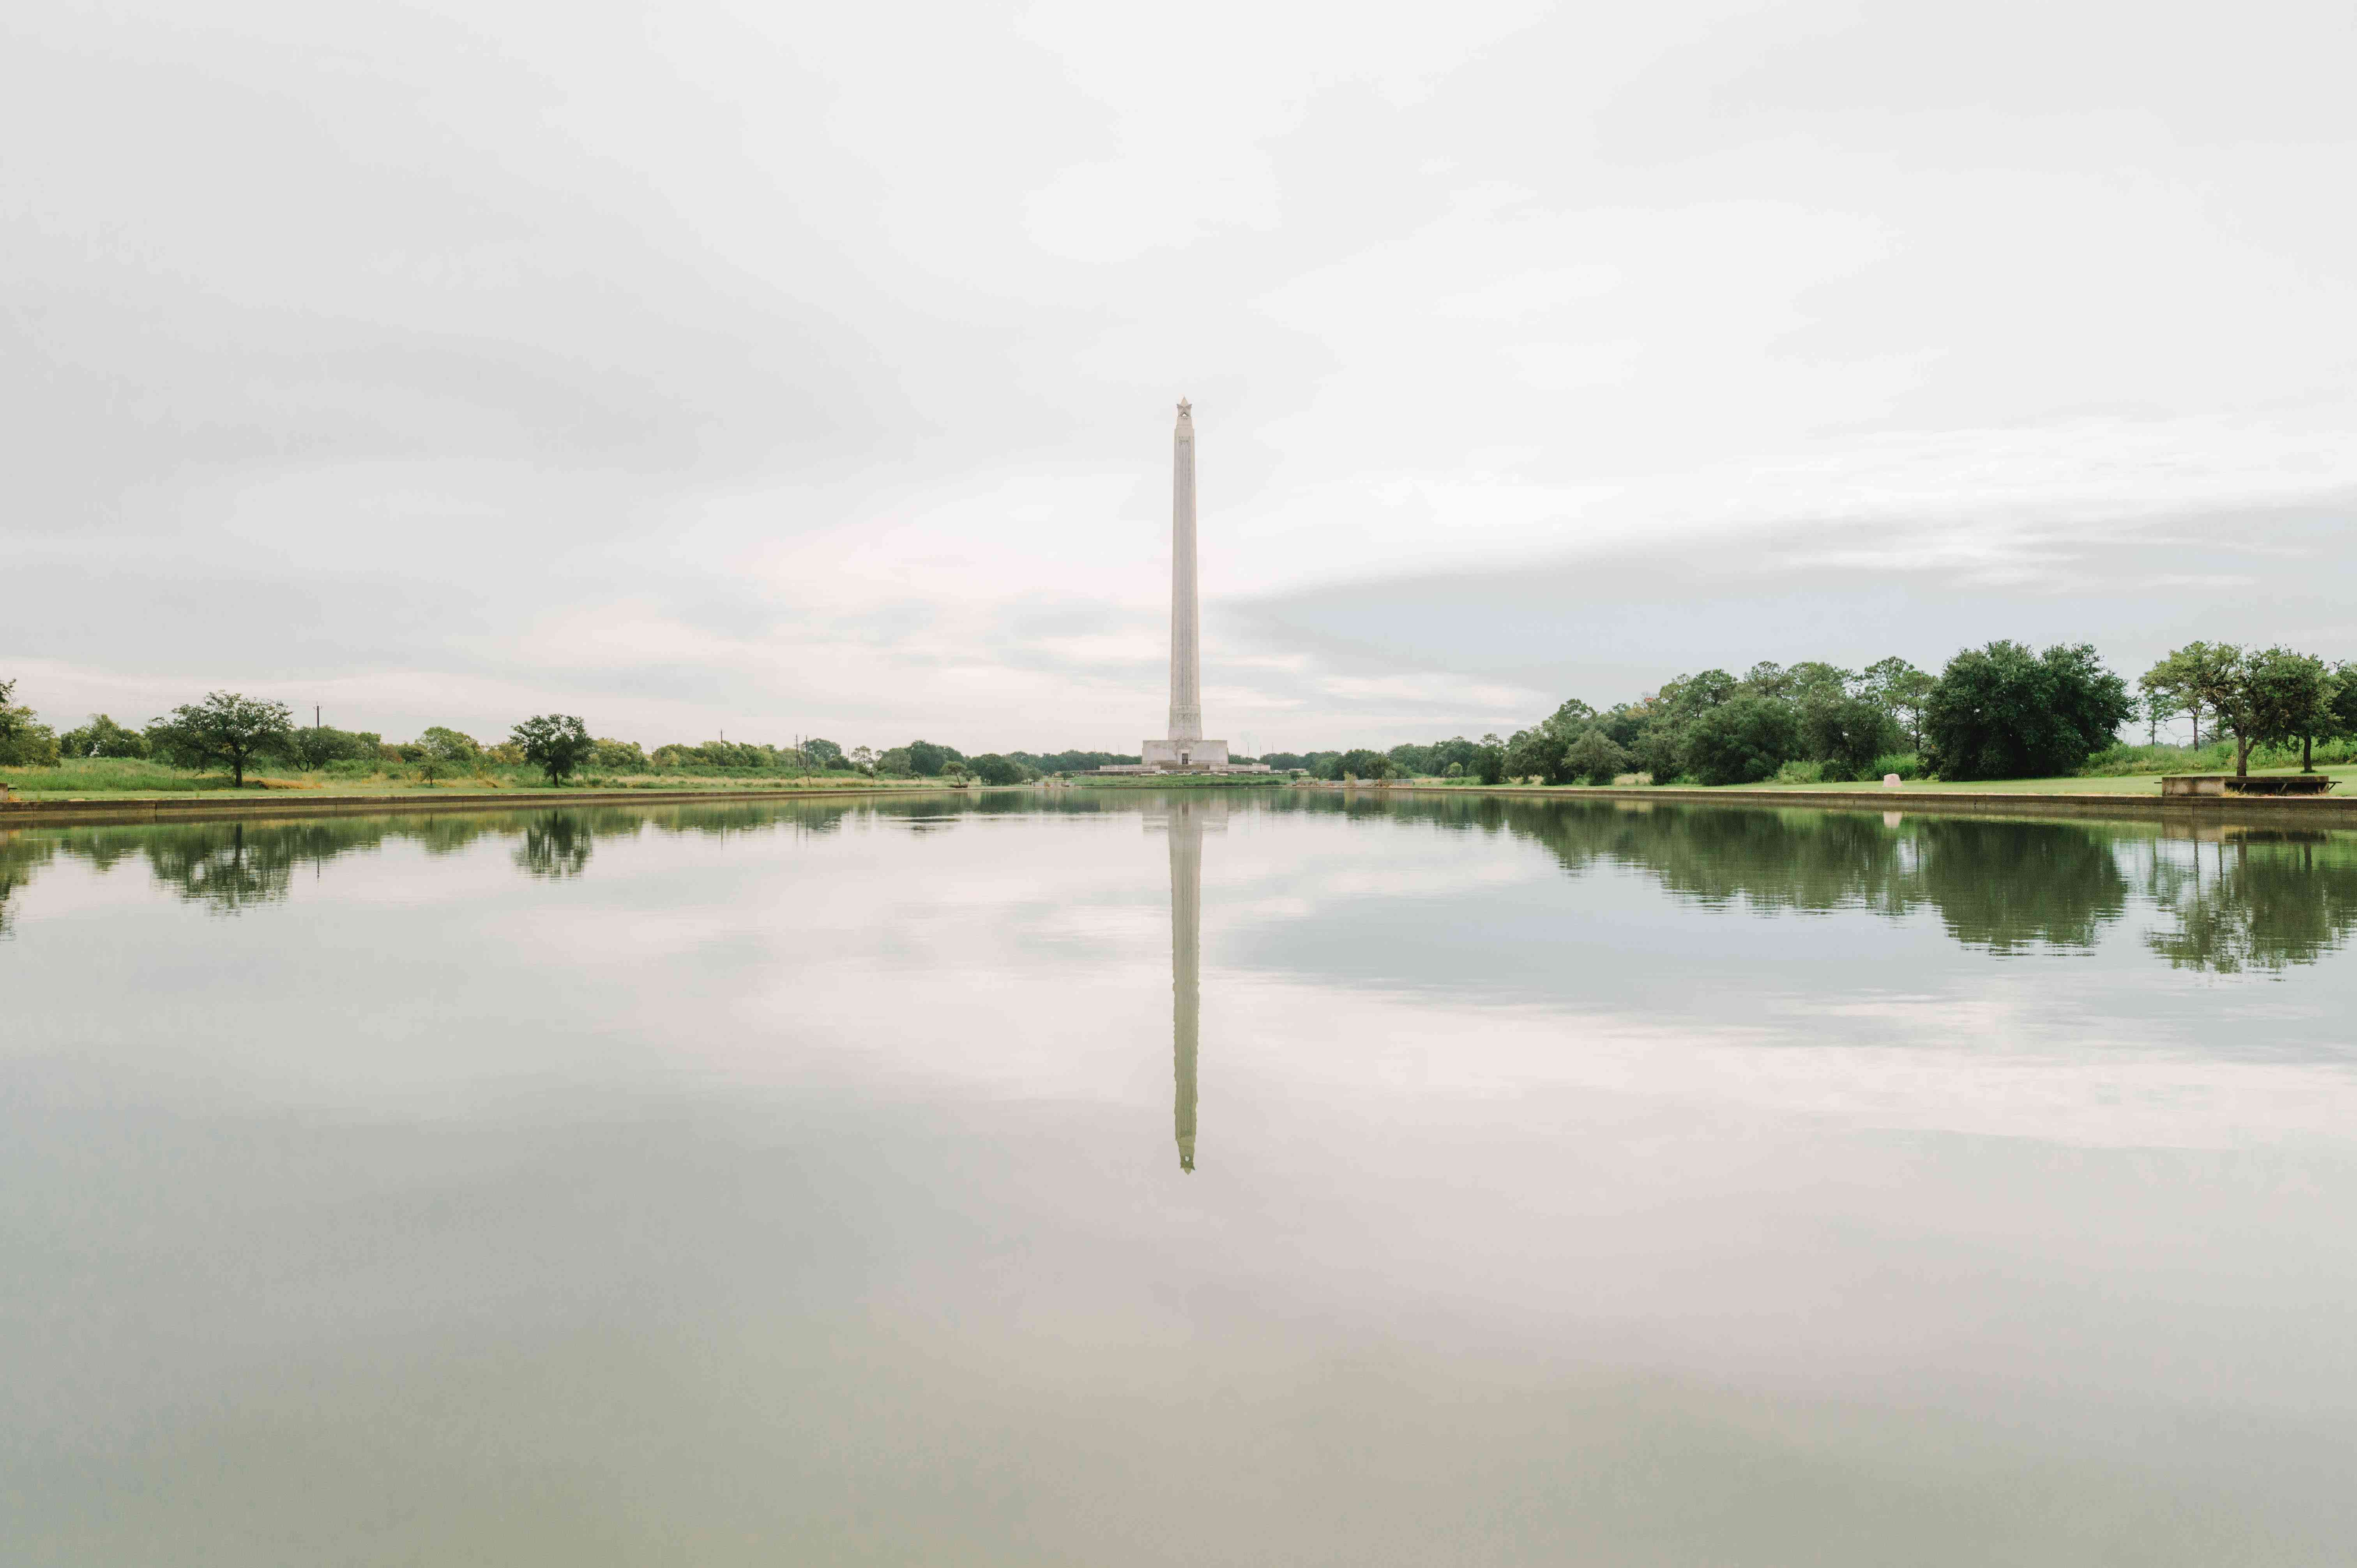 View of San Jacinto monument from across the pond that is reflecting the tower